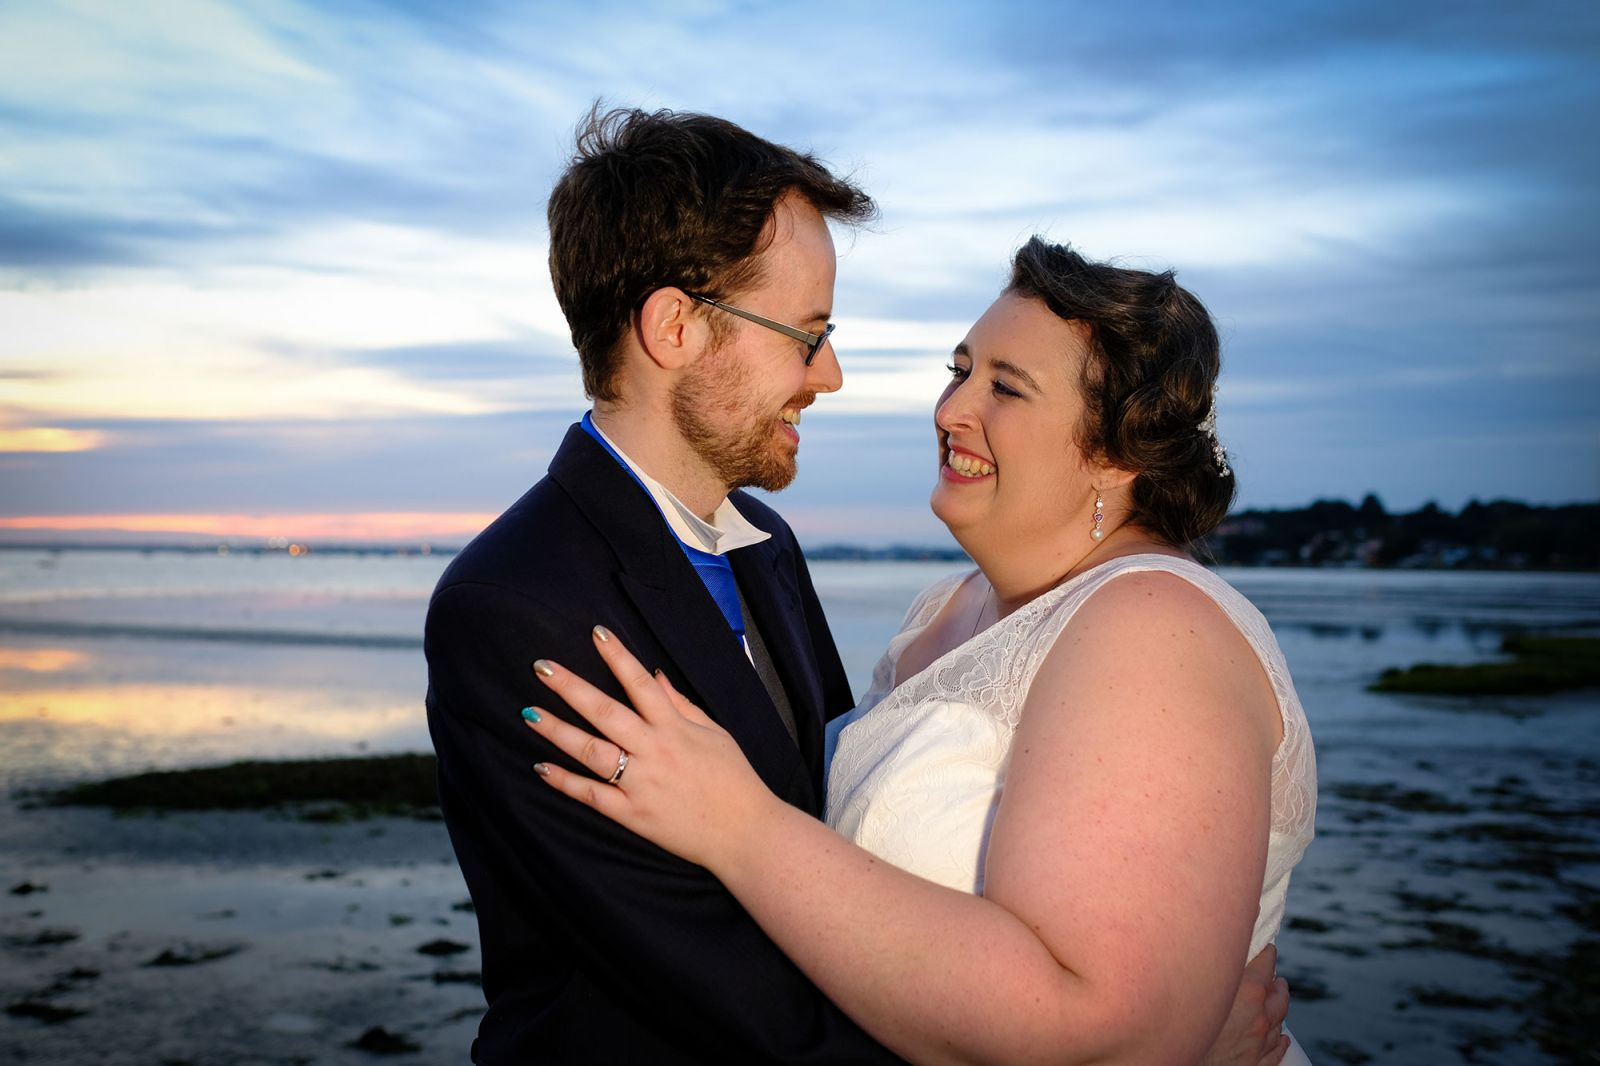 Wedding photography in Sussex, Surrey and the South East